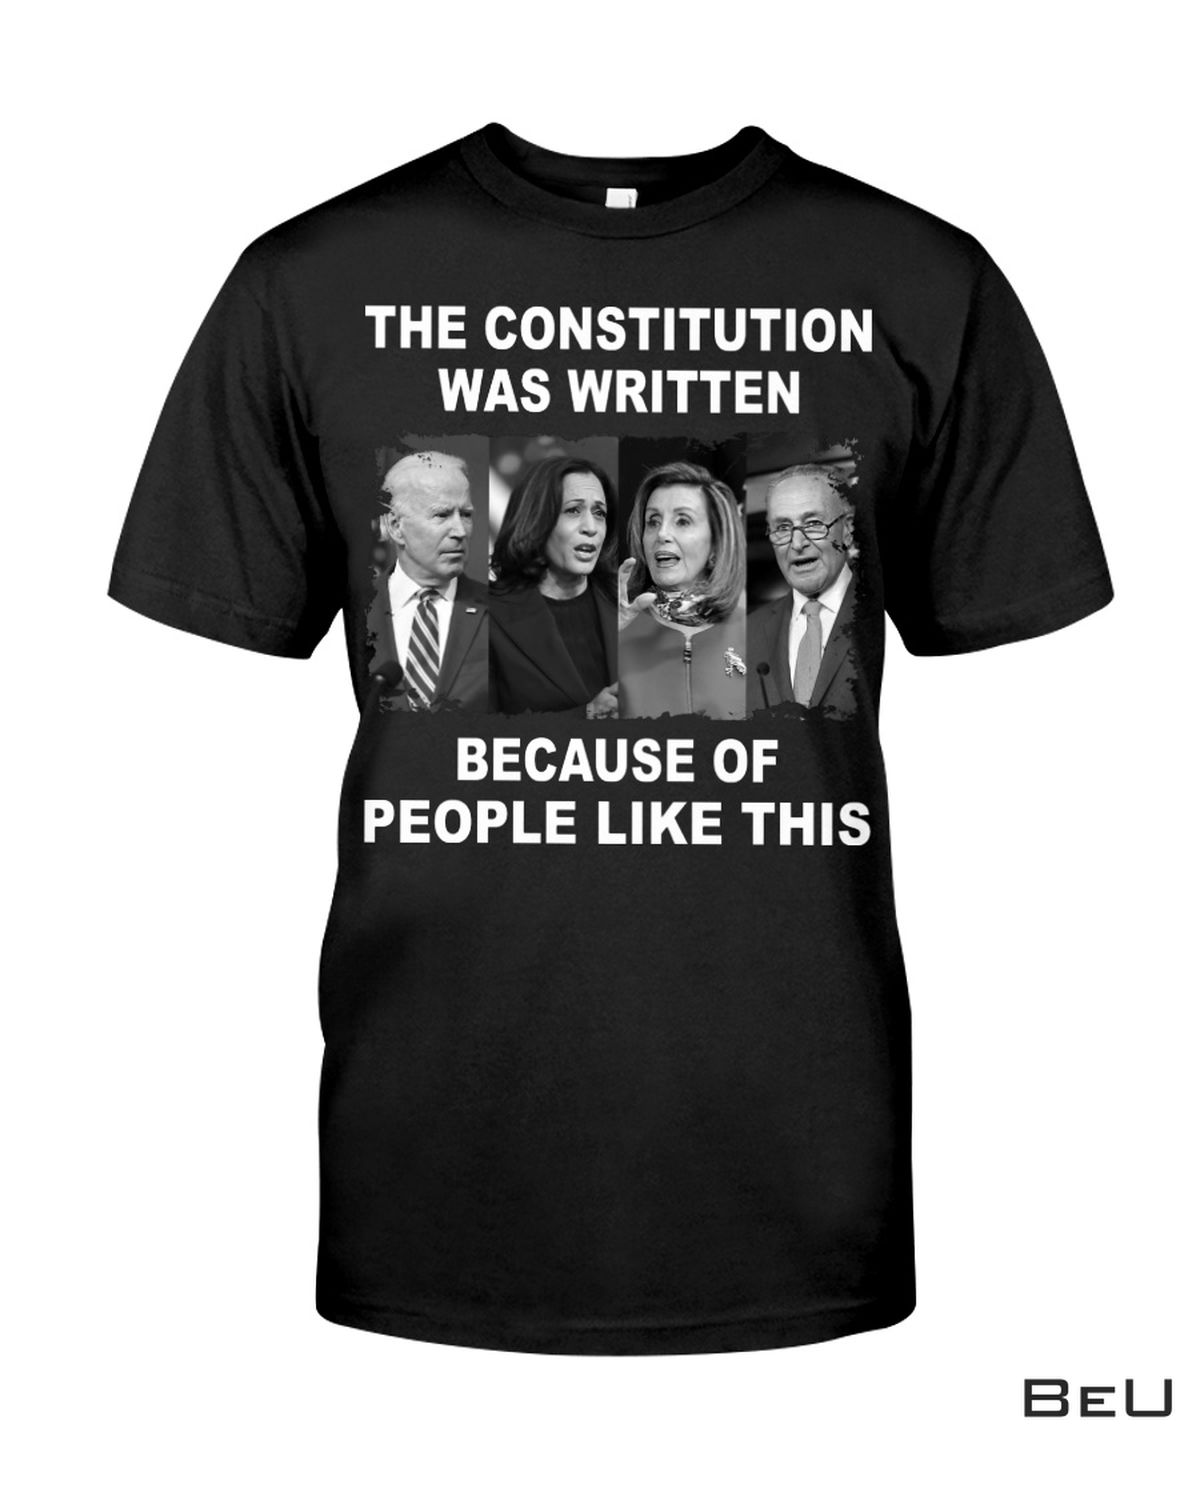 The Constitution Was Written Because Of People Like This Shirt, Hoodie, Sweatshirt